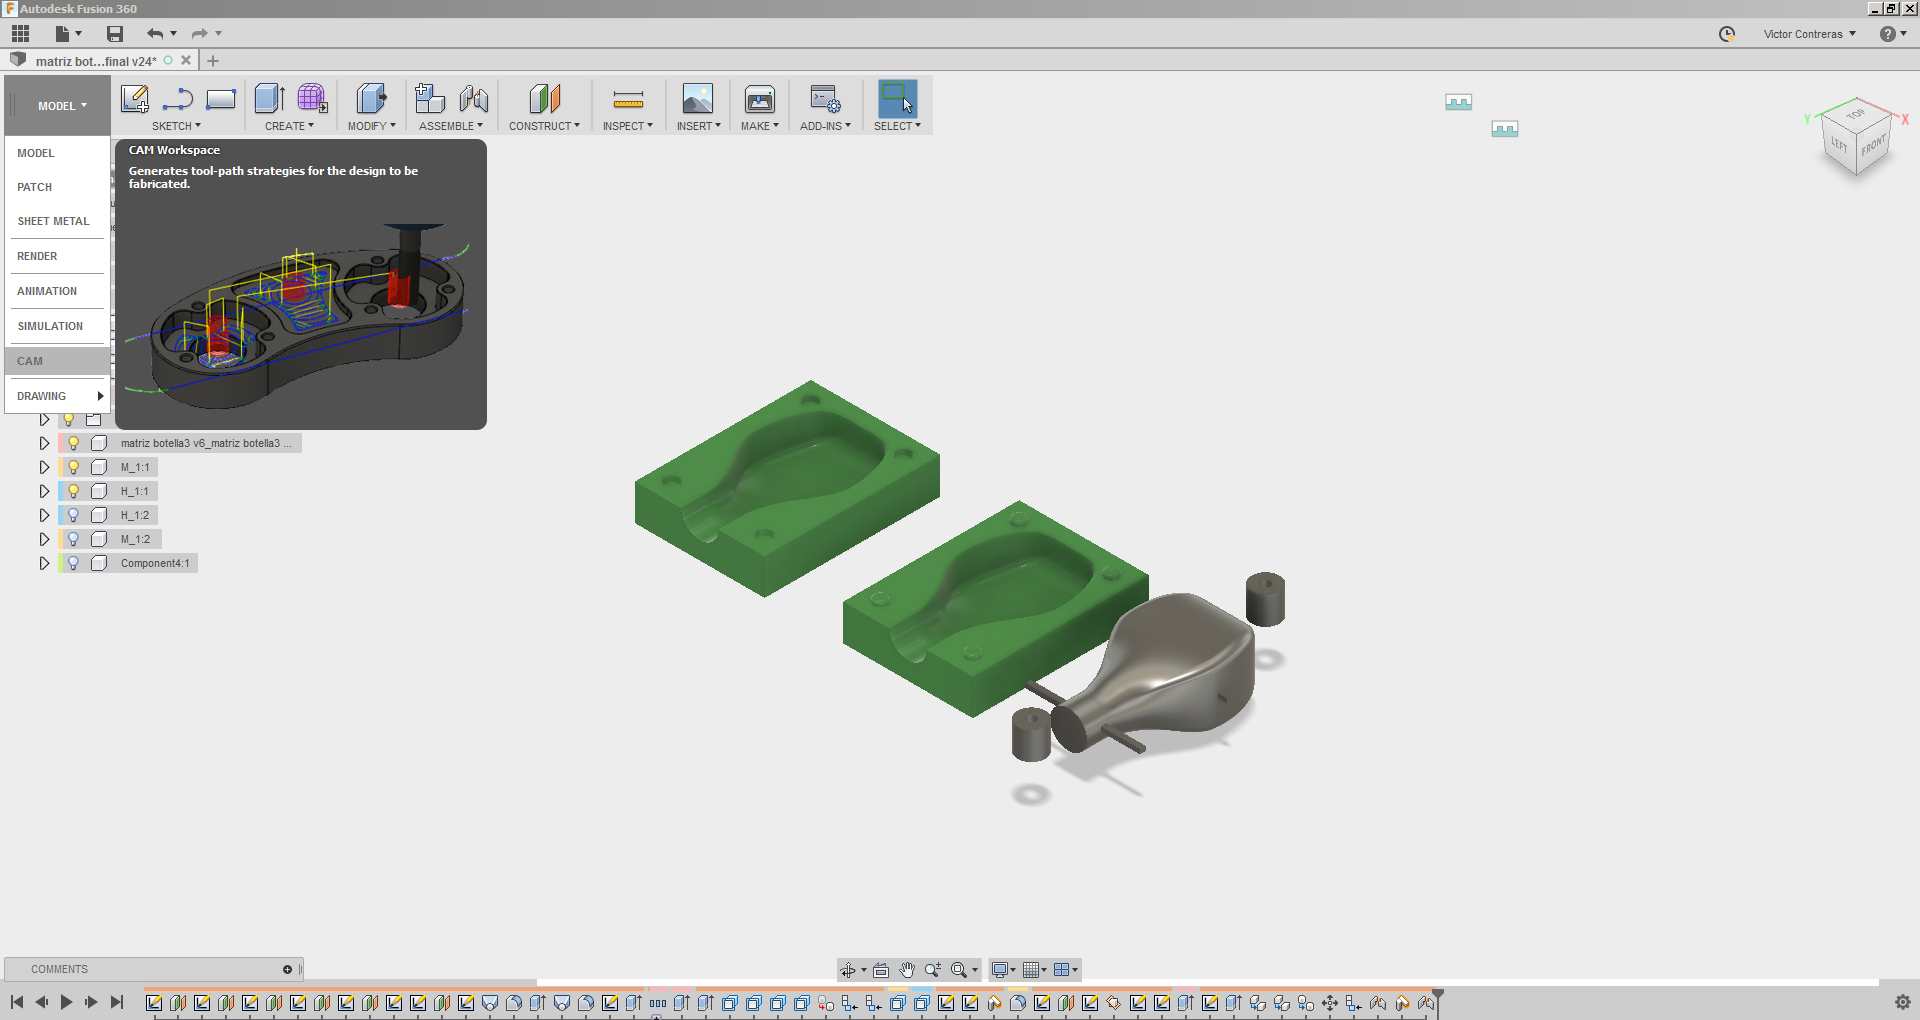 Tutorial Fusion 360 CAM 3D + ShopBot - Fab Lab Universidad